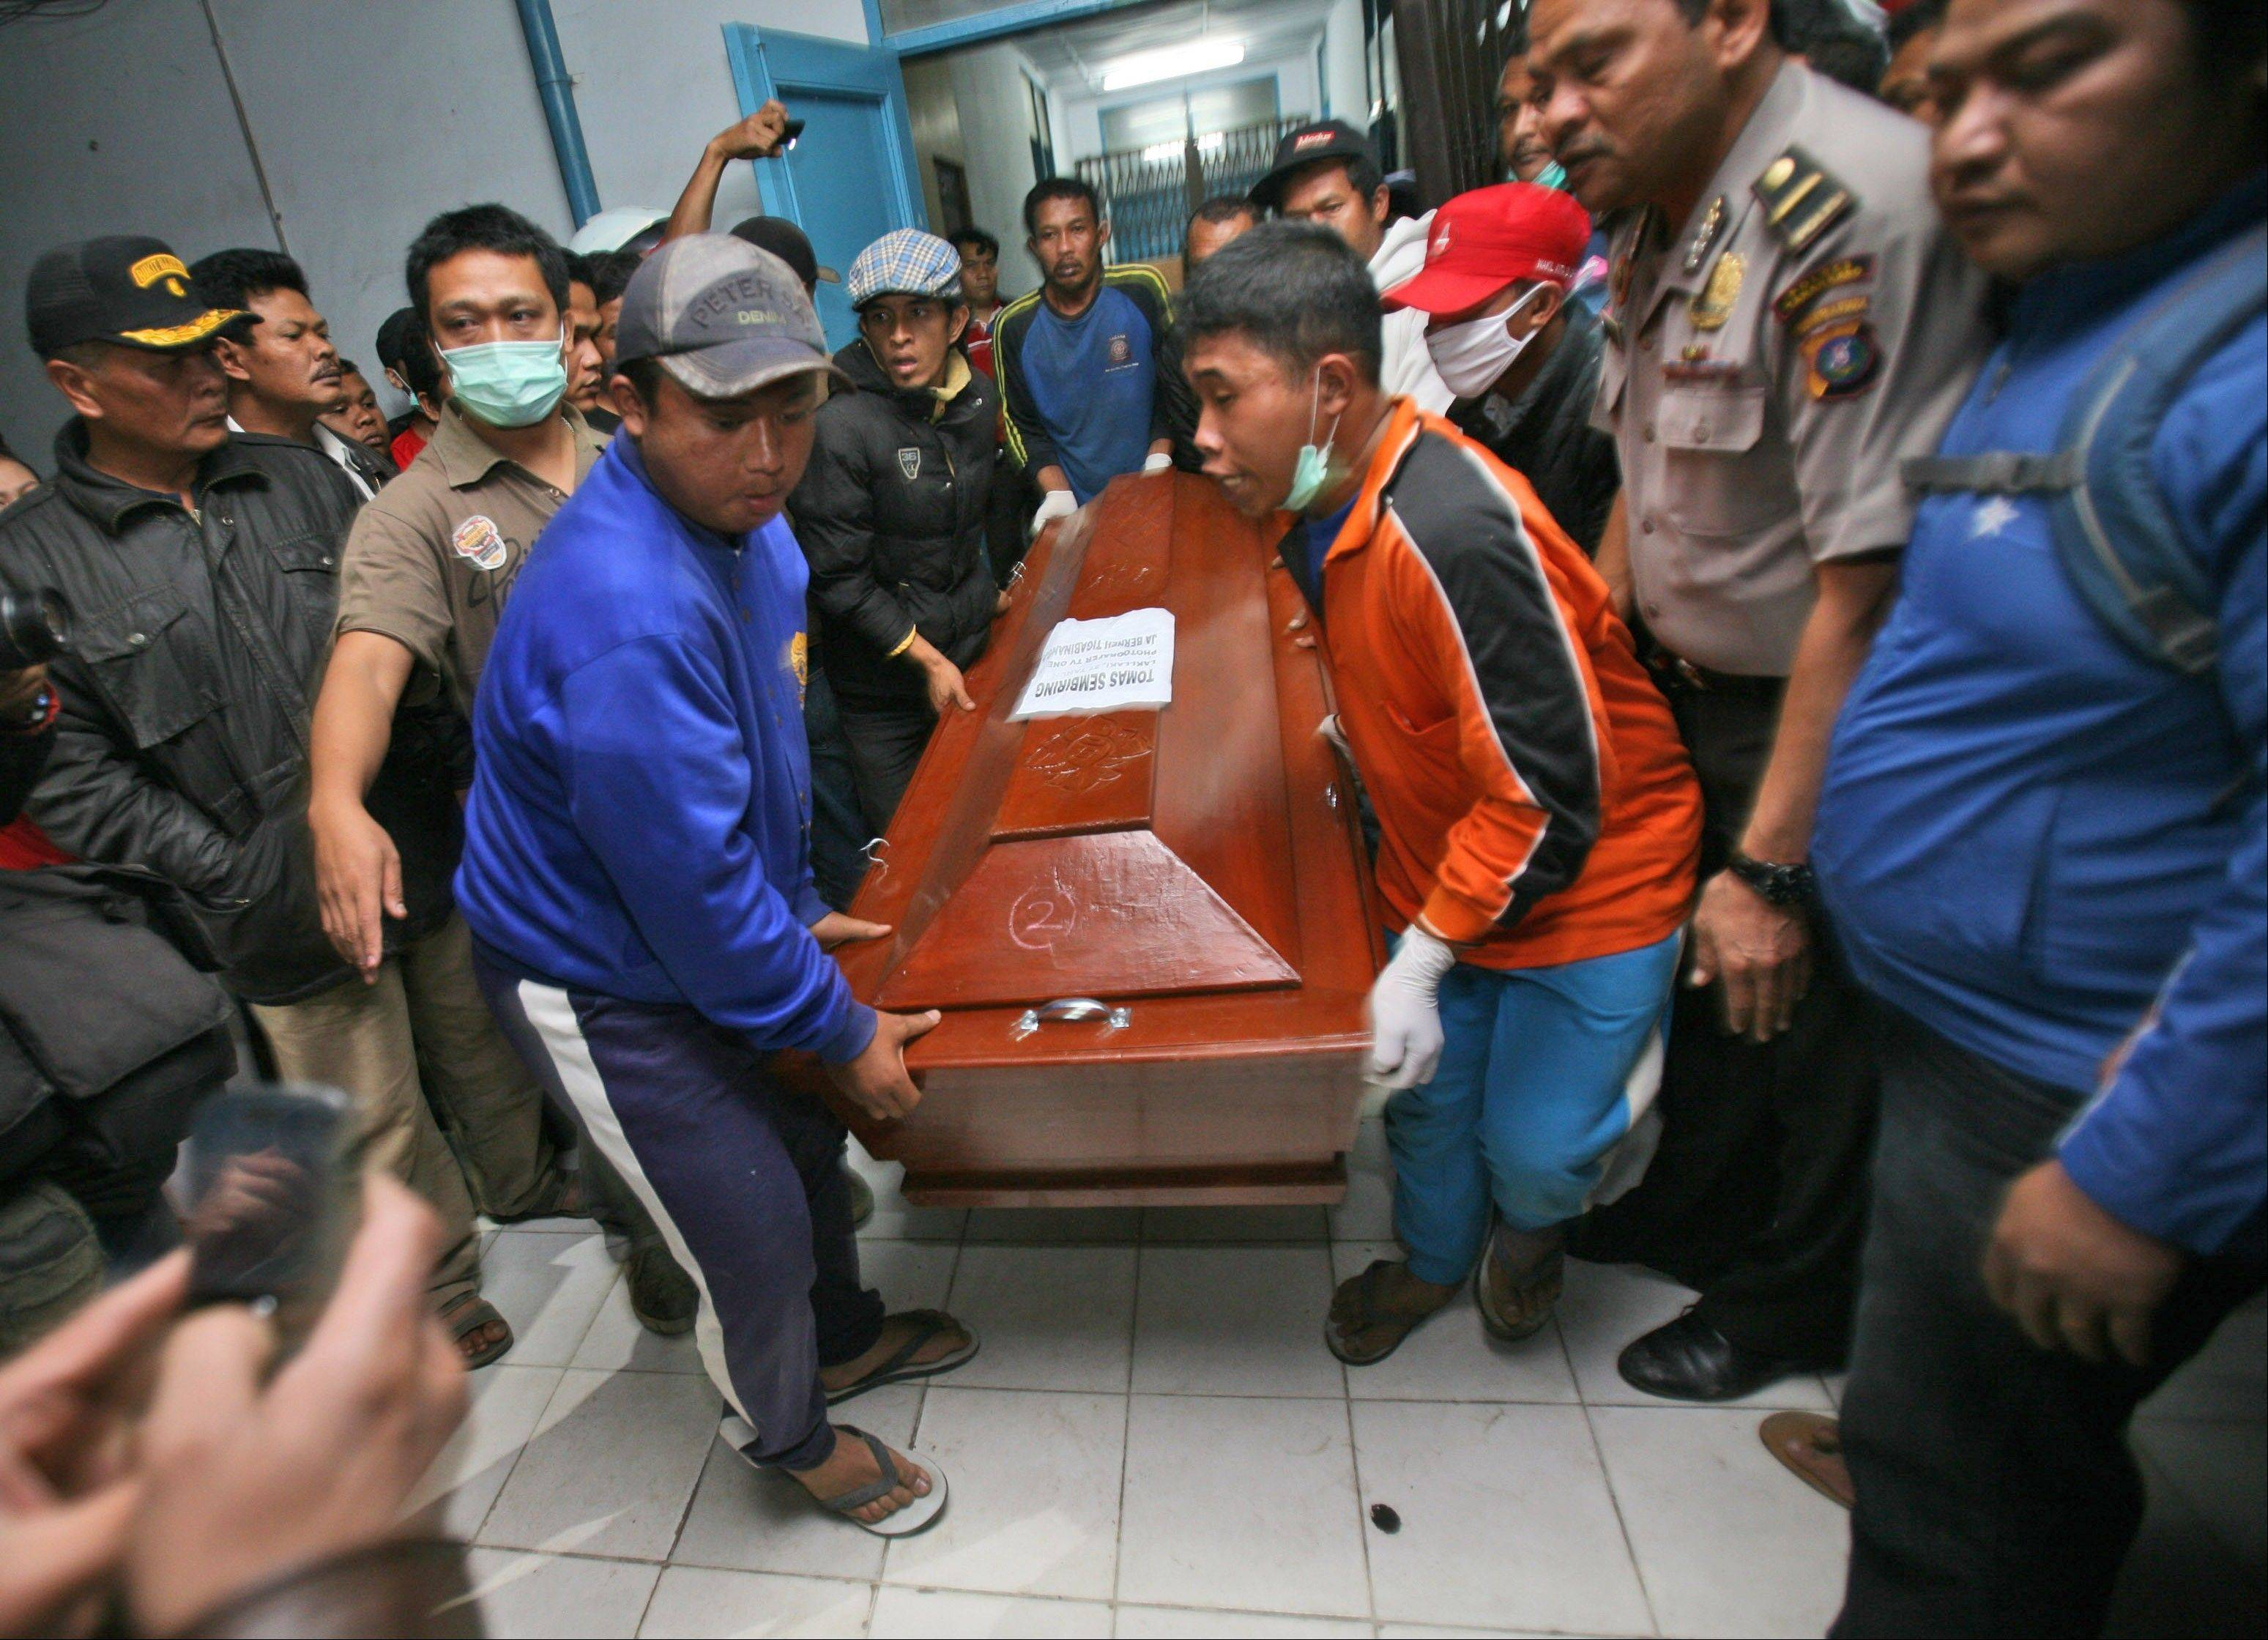 Relatives carry a coffin Saturday containing the body a victim of the eruption of Mount Sinabung, at a hospital in Kabanjahe, North Sumatra, Indonesia.